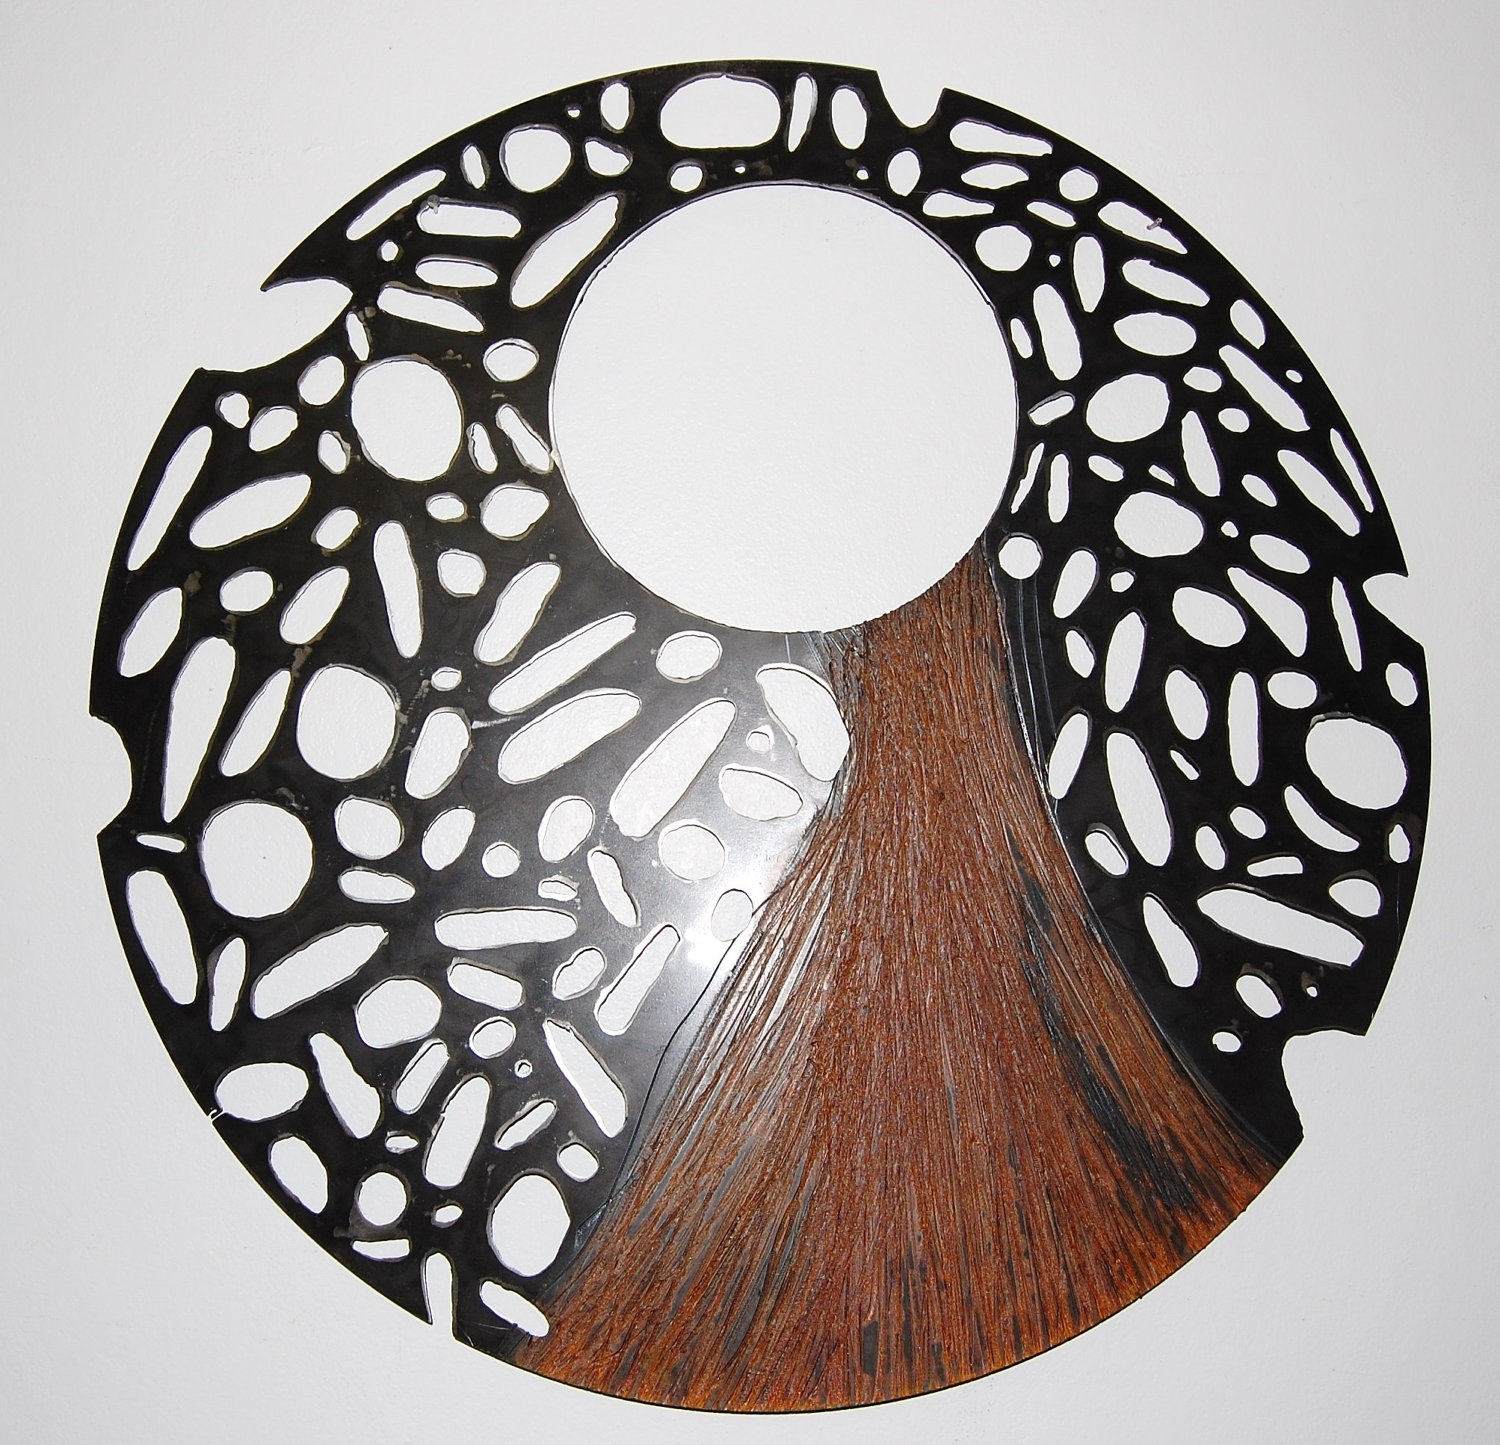 Large Steel Sculpture,recycled Metal Wall Art, Round Perforated Inside Newest Abstract Garden Wall Art (Gallery 11 of 20)